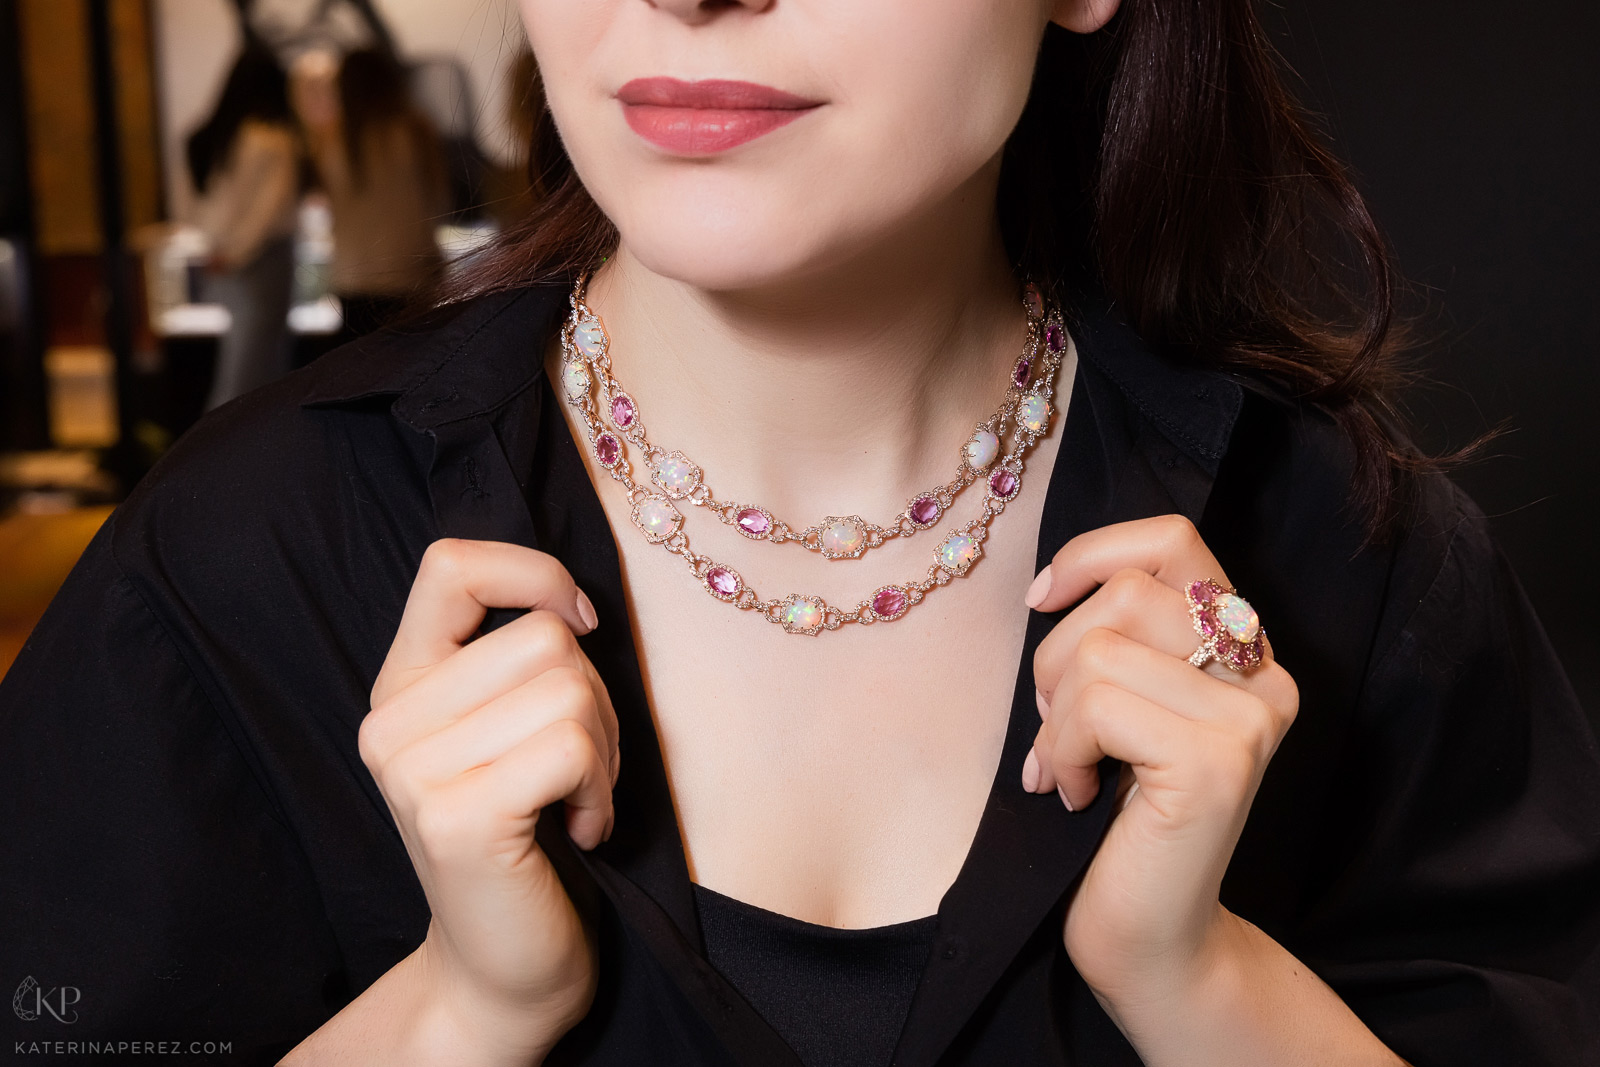 Sutra necklace and ring with opals and pinks sapphires. Photo credit: Simon Martner